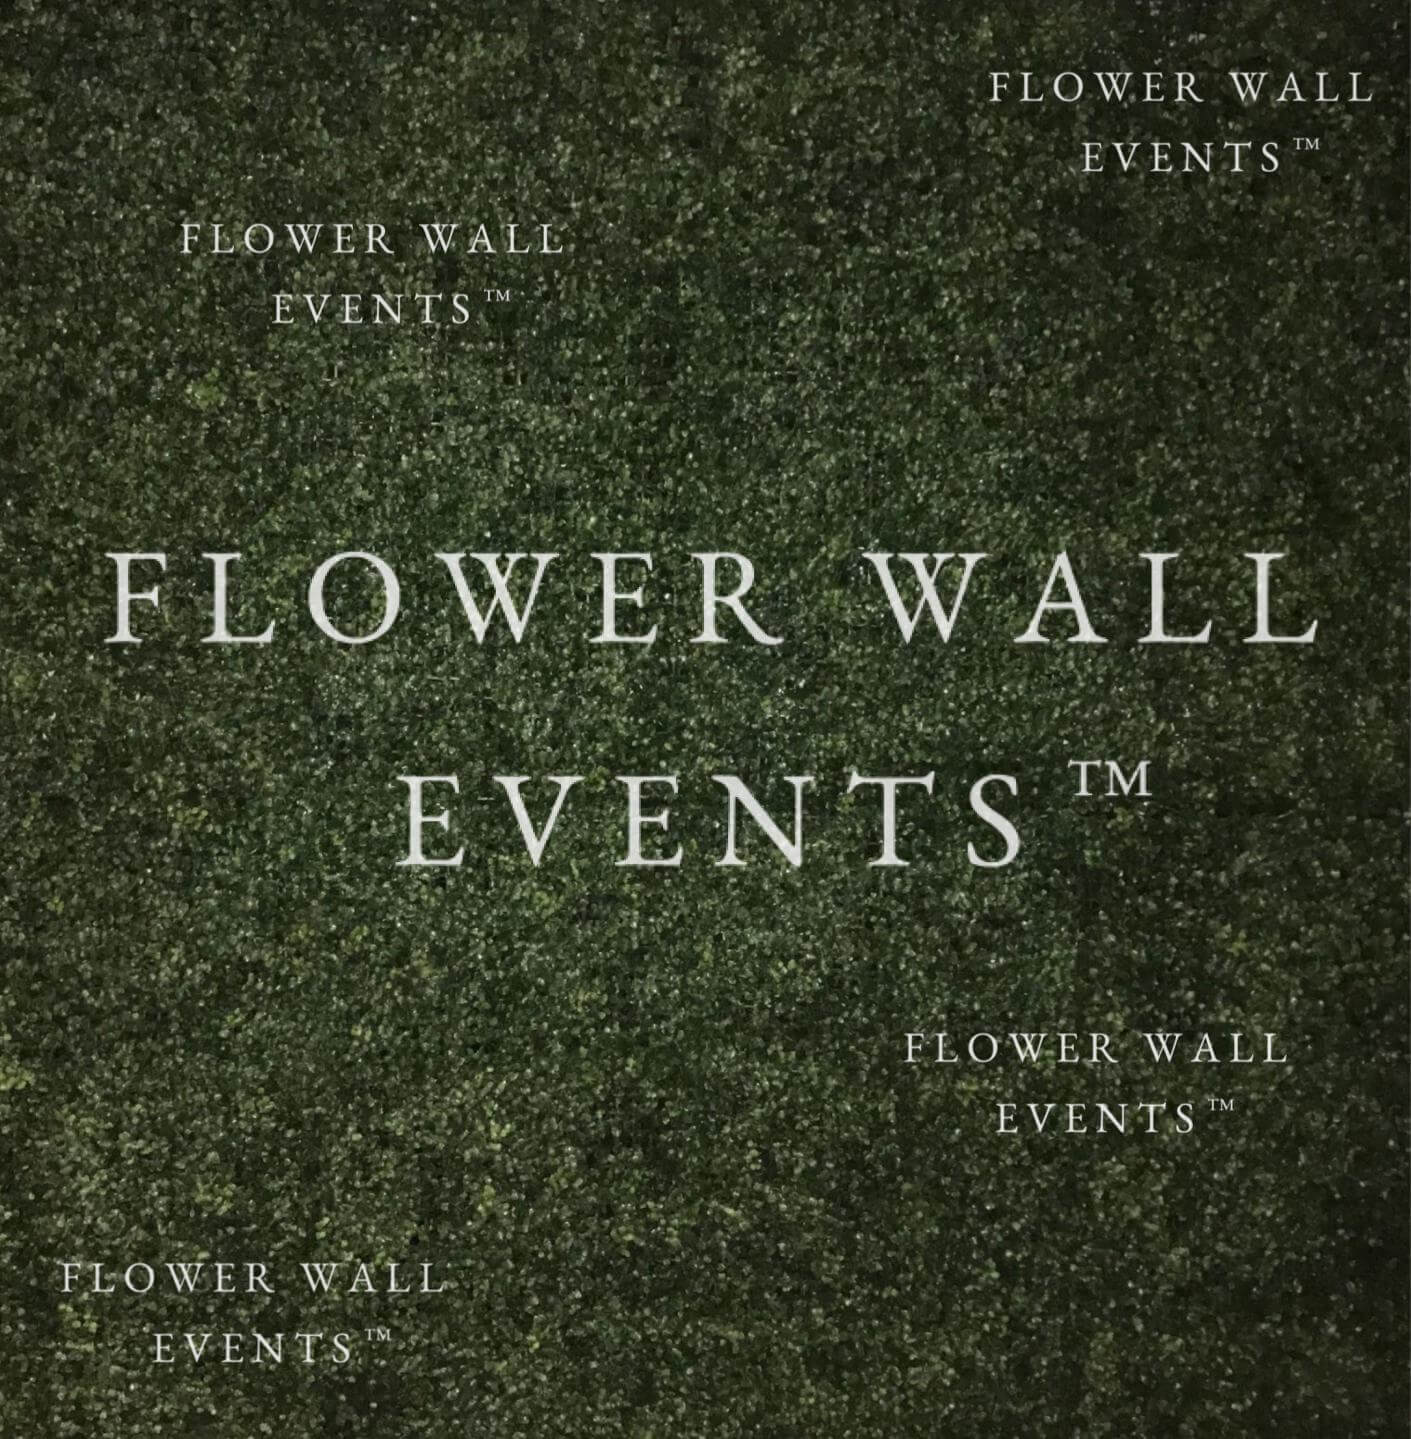 flower wall hire melbourne green hedge